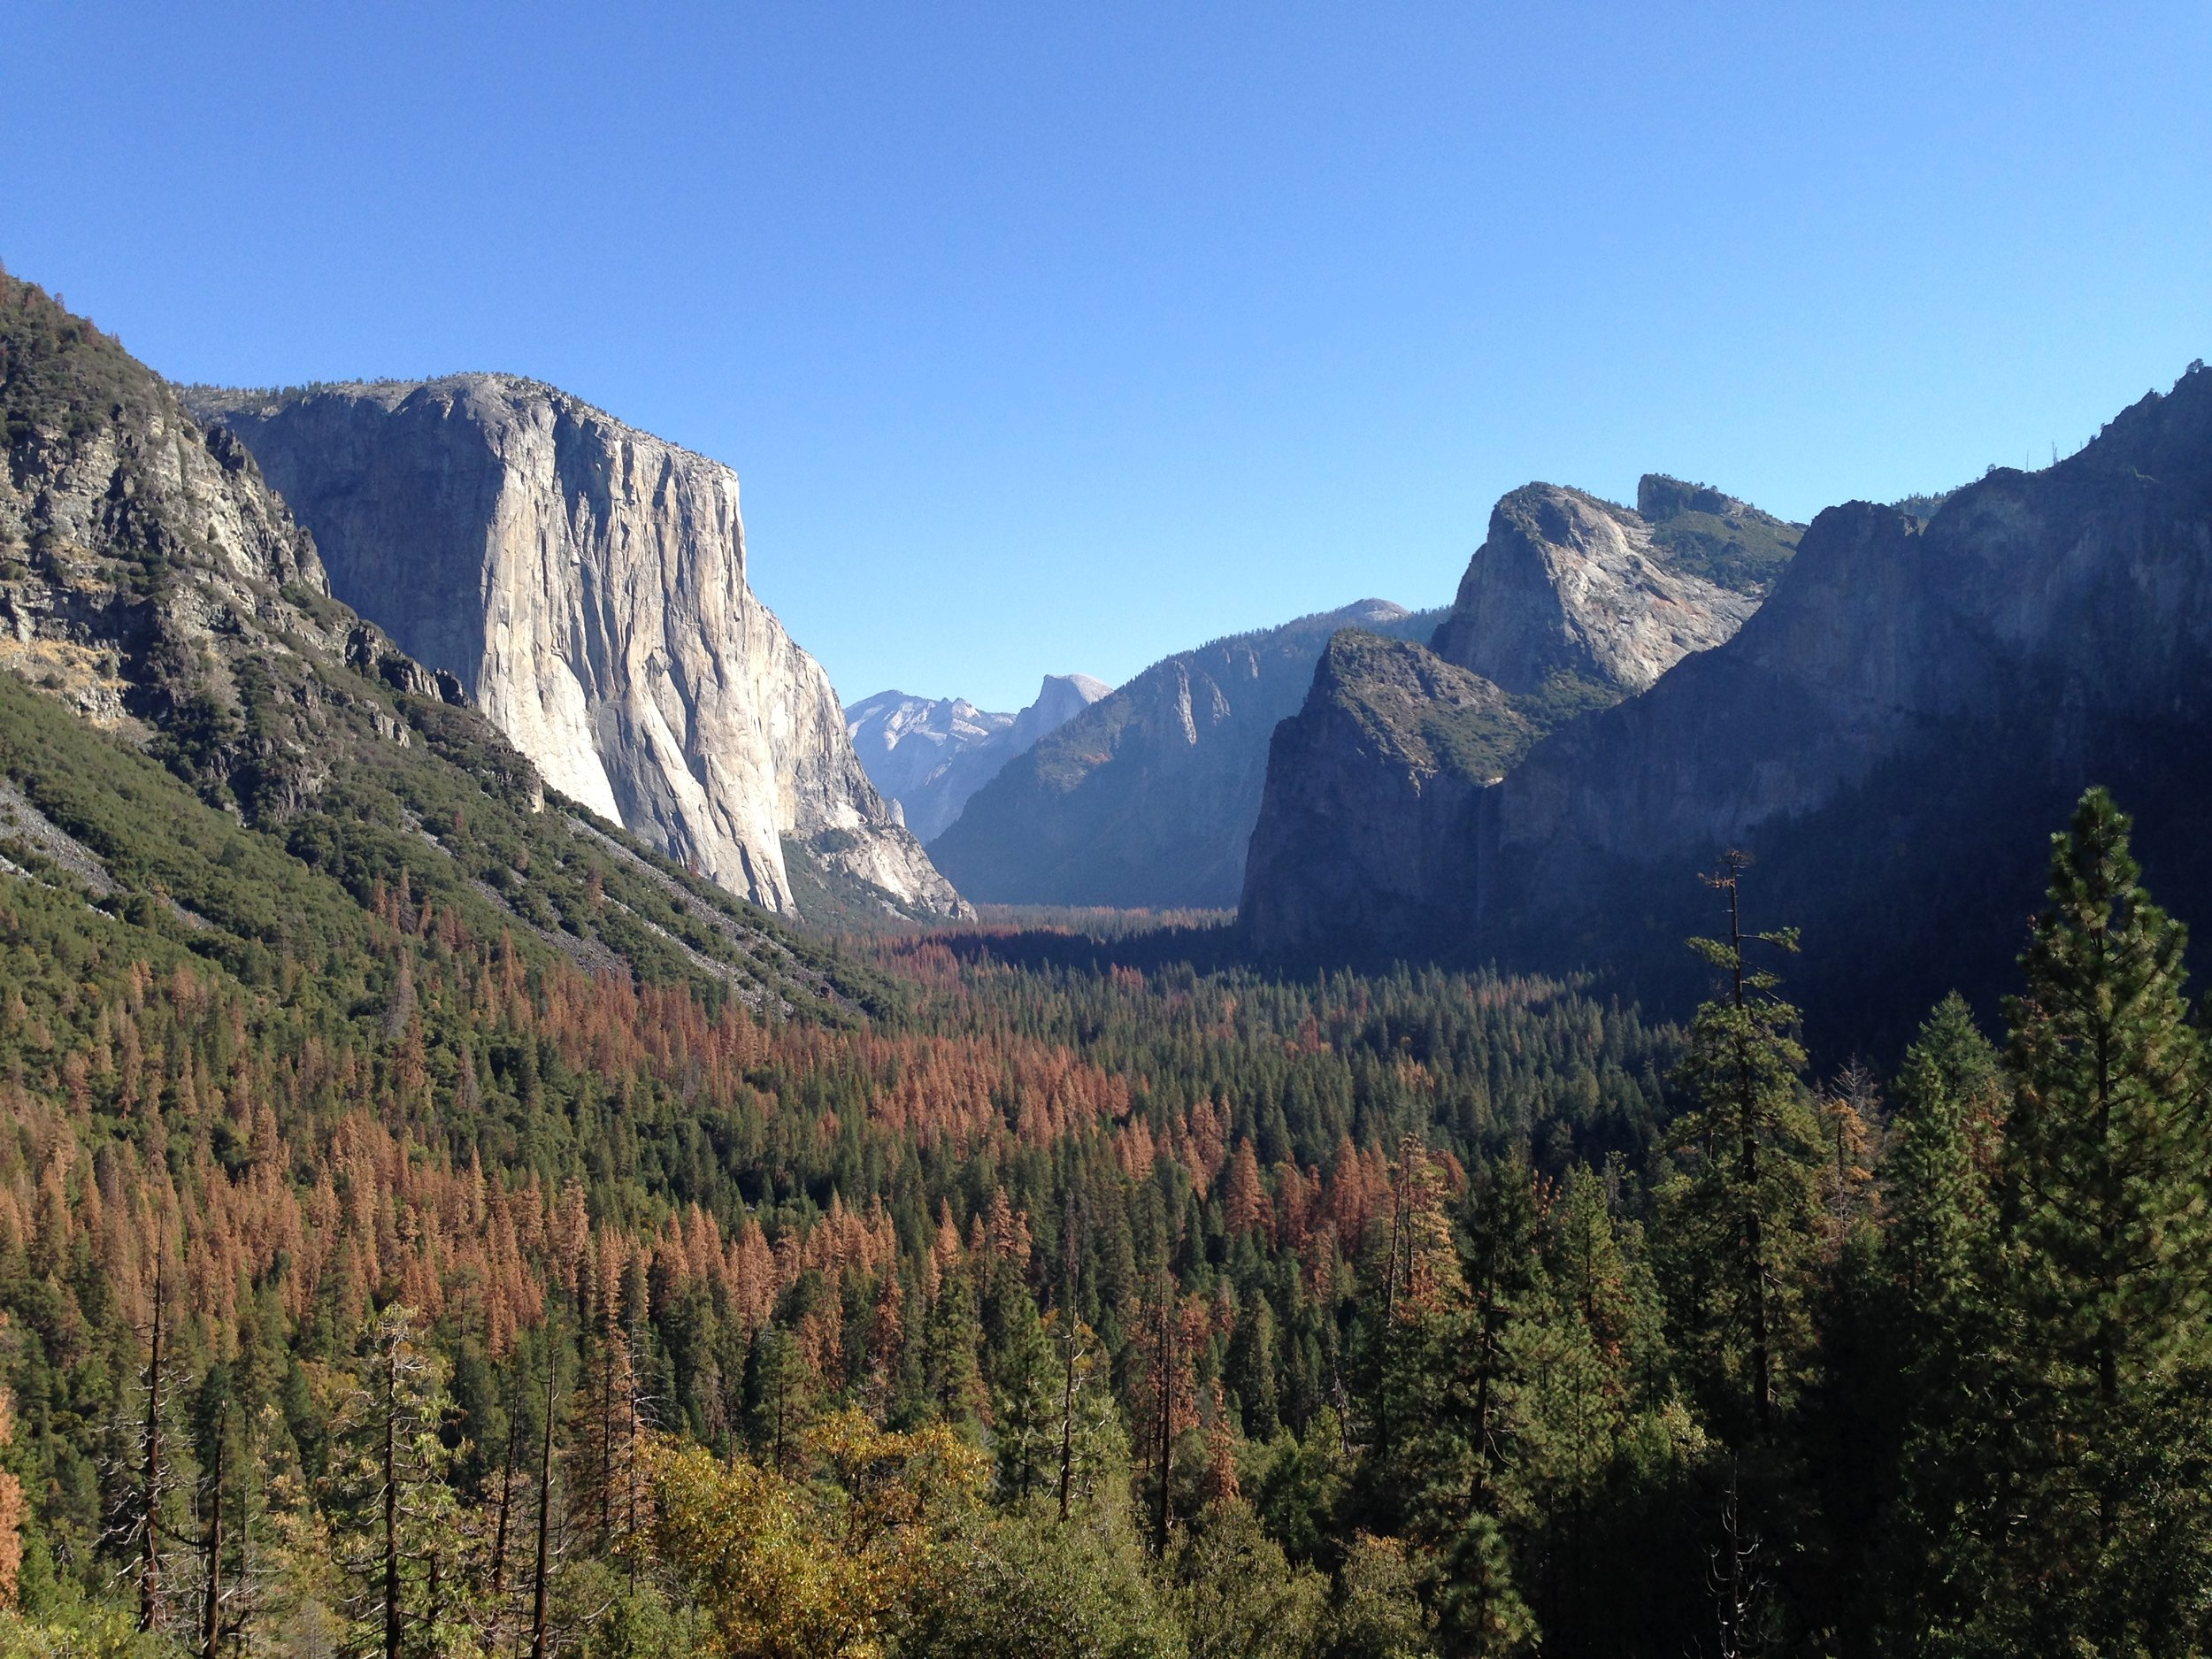 Yosemite Valley - October 2016 - Yosemite Valley again from the Tunnel View. Notice the amount of dead pines from the drought and Pine Bark Beetle.